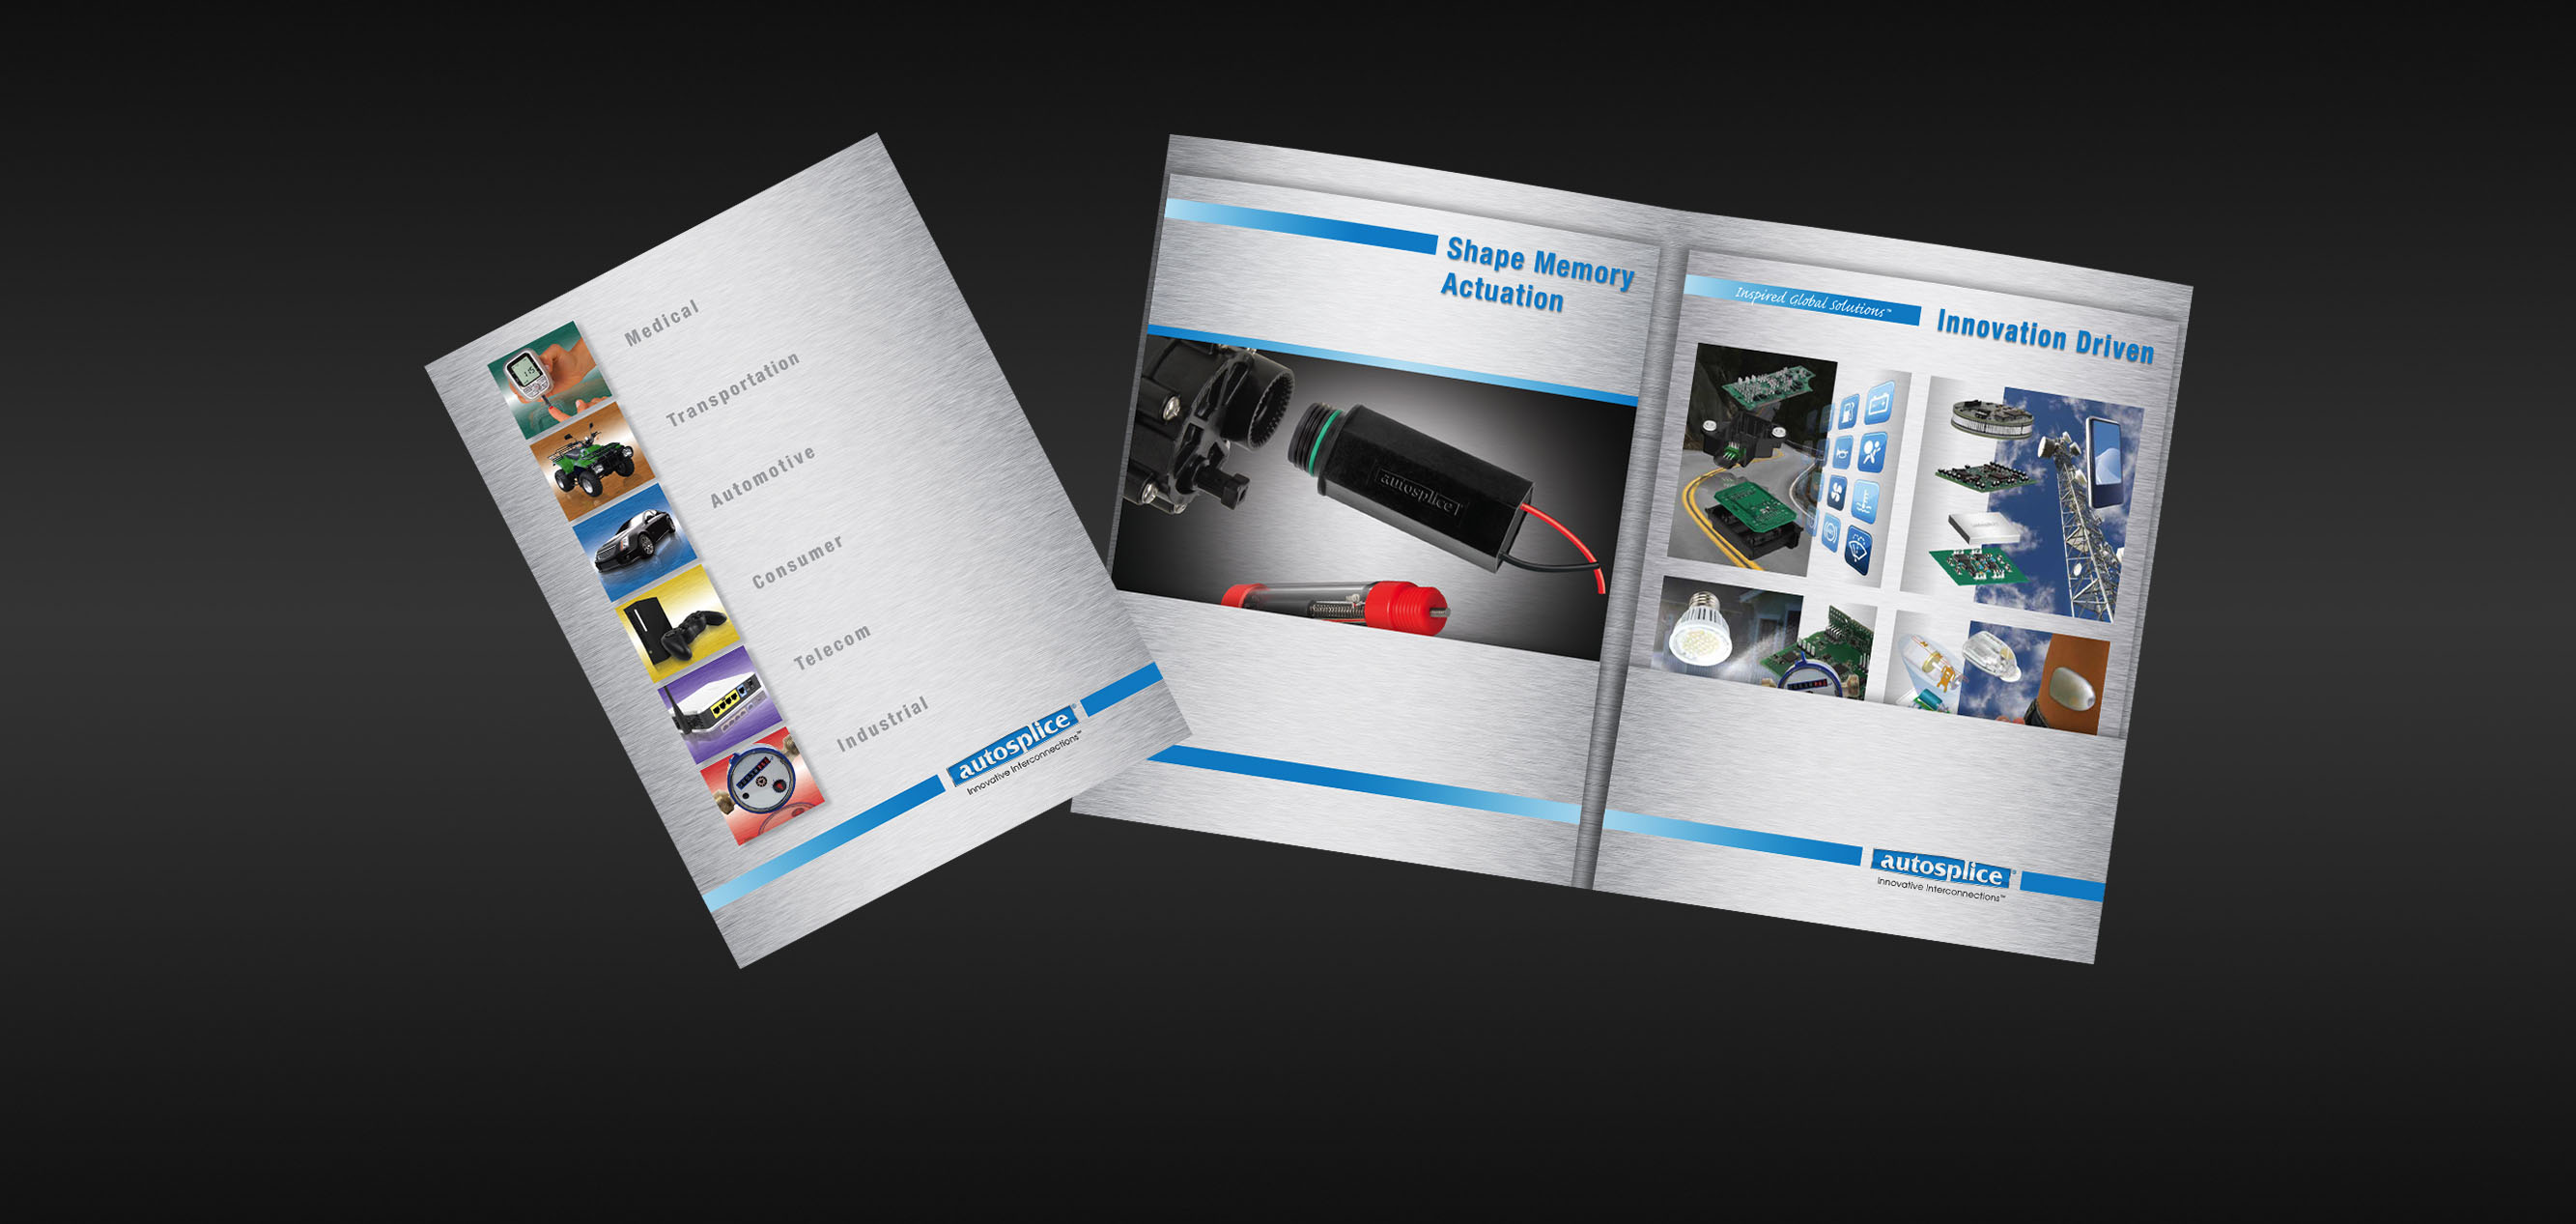 product brochure design and photography for an electronic component company